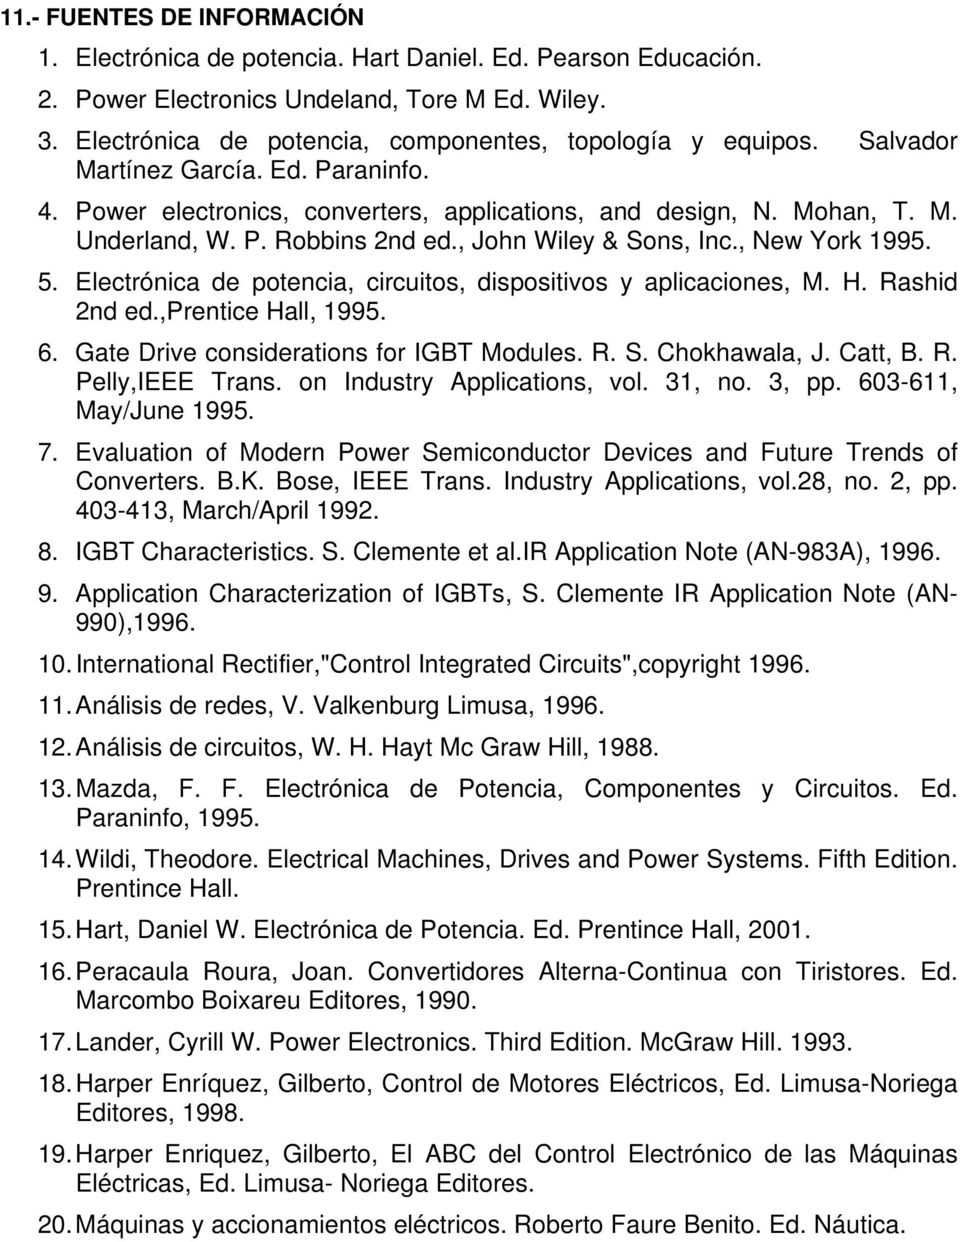 , John Wiley & Sons, Inc., New York 1995. 5. Electrónica de potencia, circuitos, dispositivos y aplicaciones, M. H. Rashid 2nd ed.,prentice Hall, 1995. 6. Gate Drive considerations for IGBT Modules.